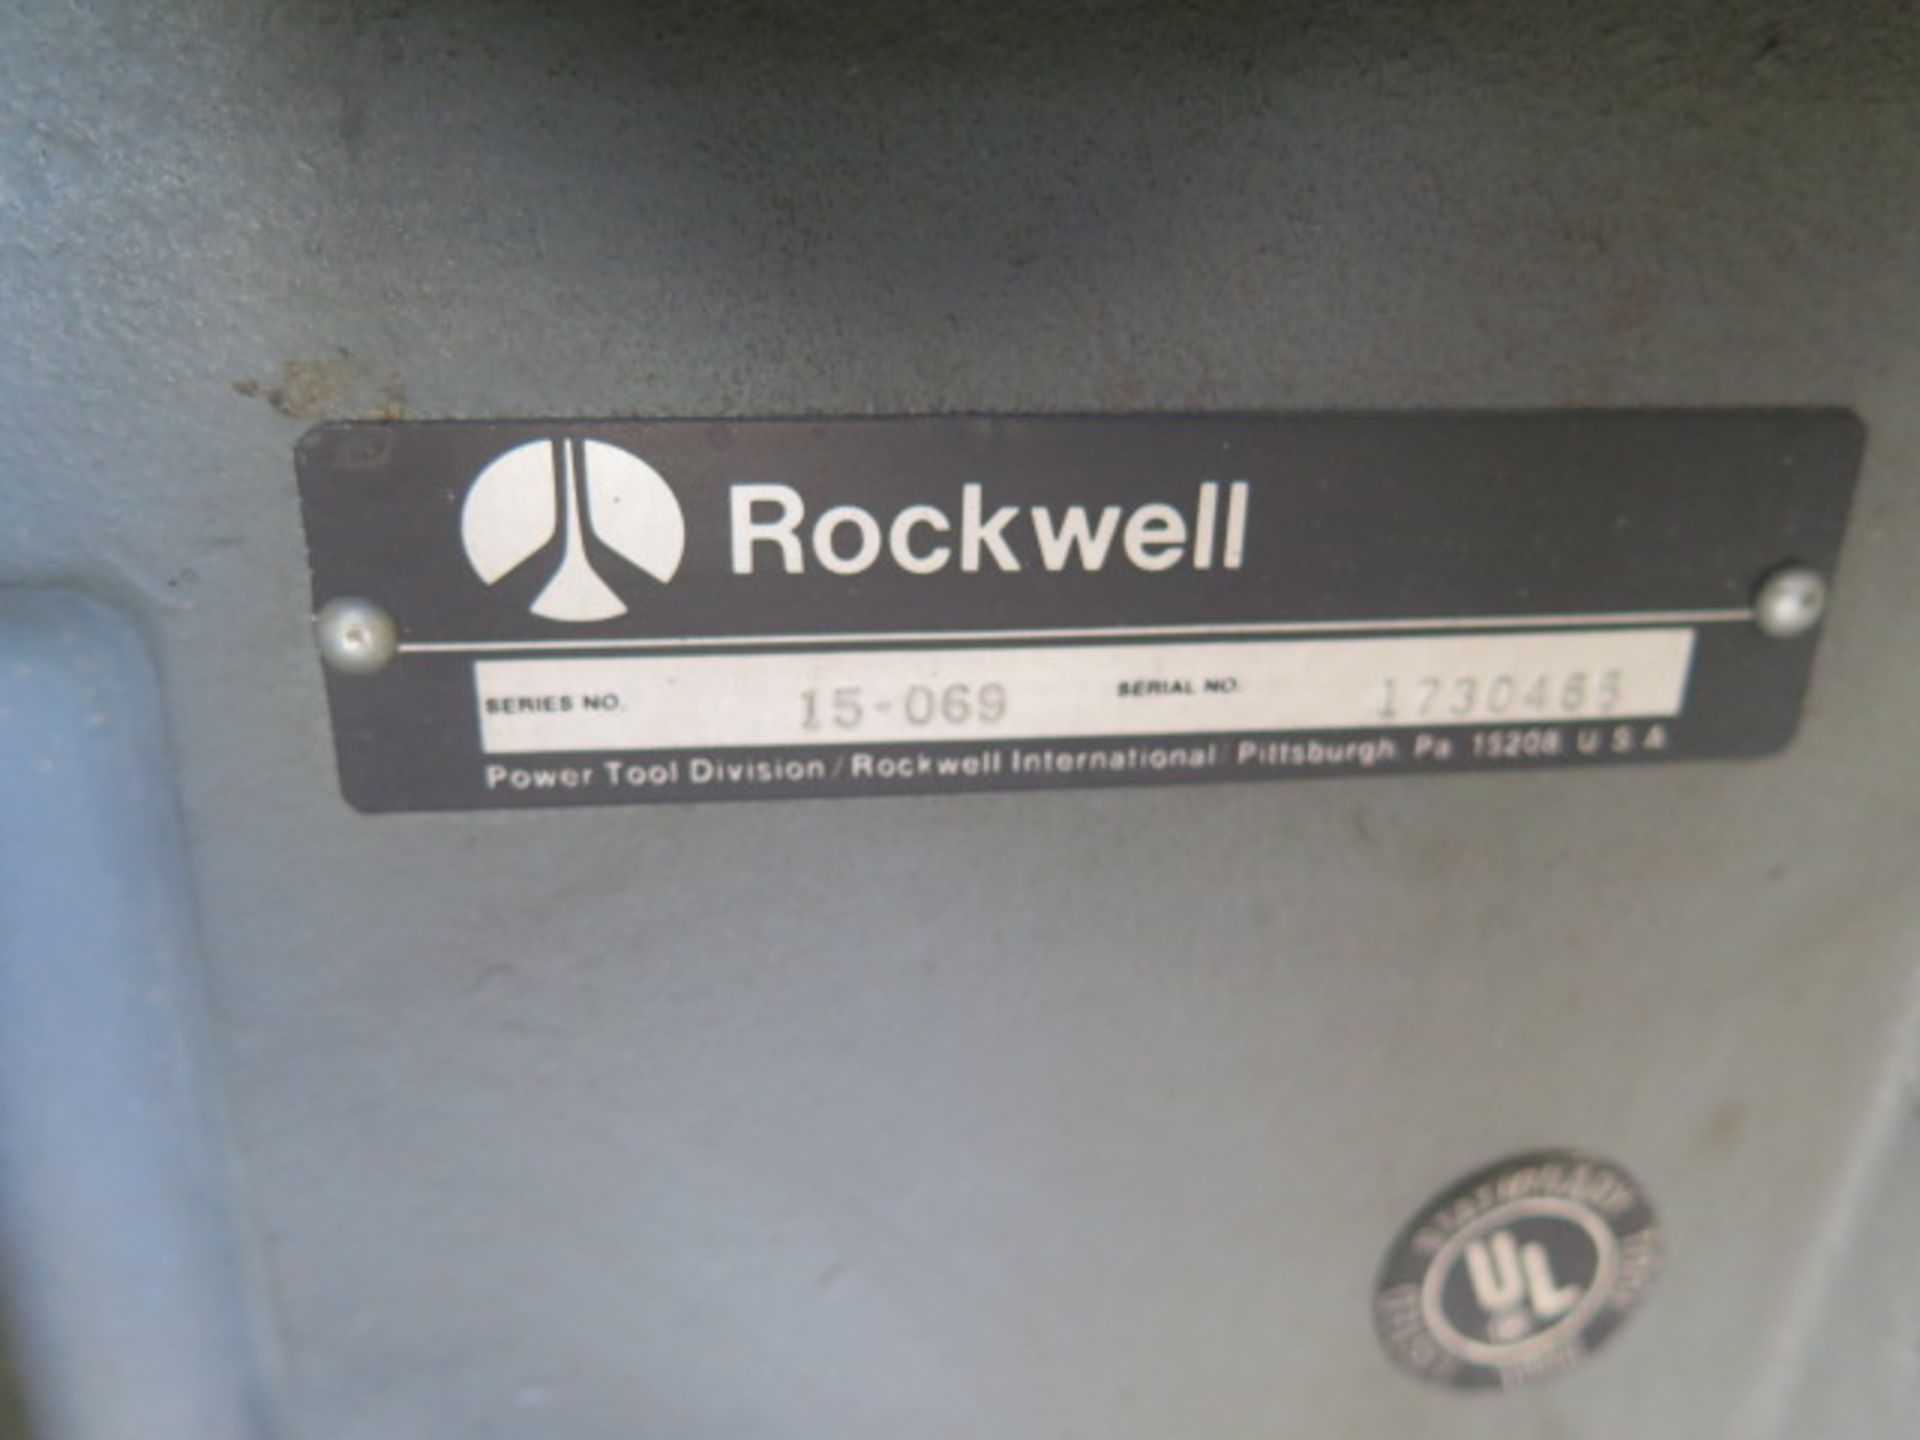 Rockwell Pedestal Drill Press (SOLD AS-IS - NO WARRANTY) - Image 6 of 6